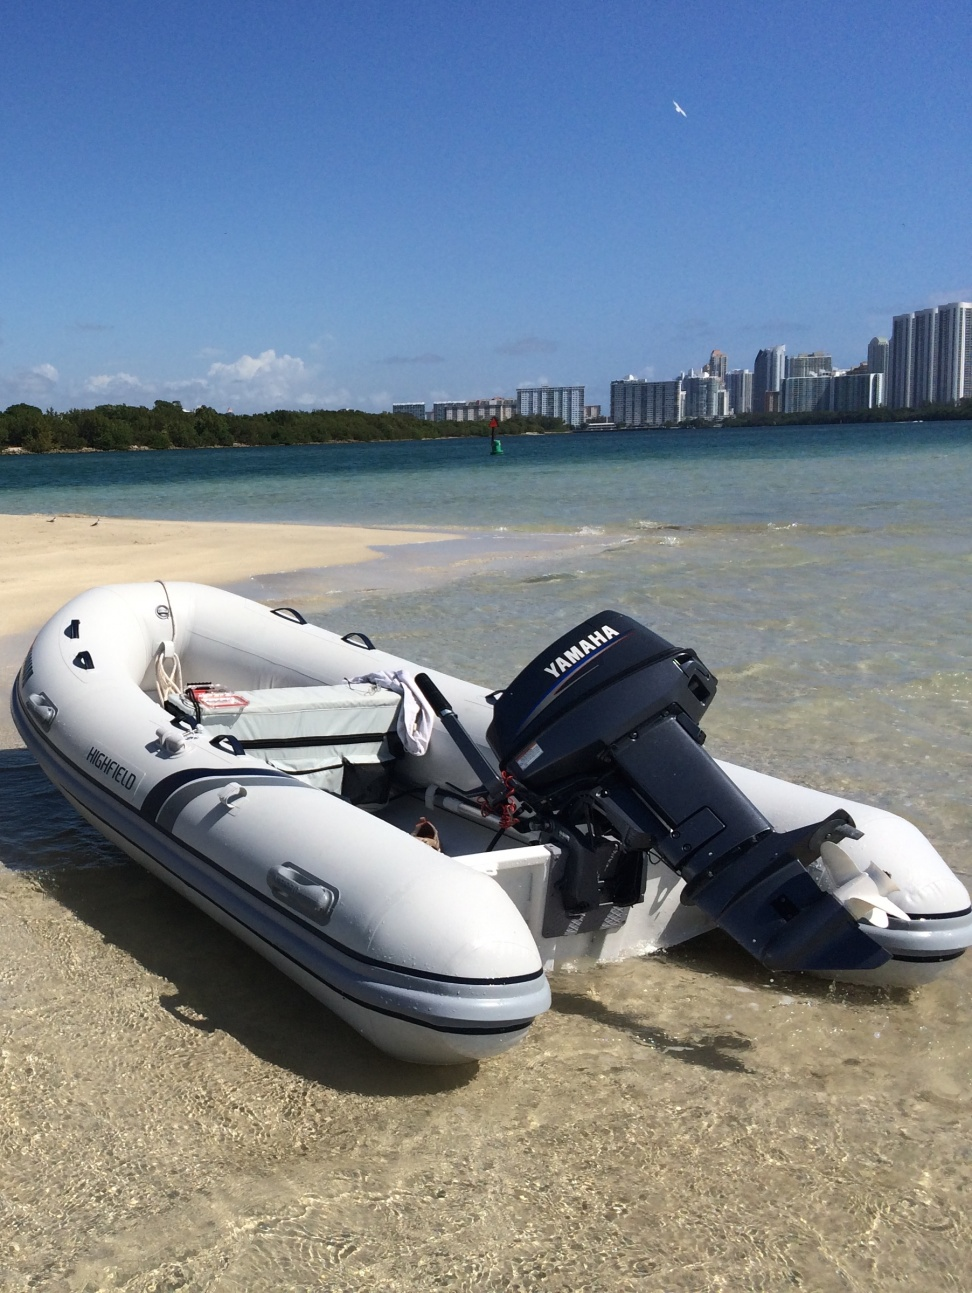 Tender Outboard Size  15HP or 20HP? - Cruisers & Sailing Forums